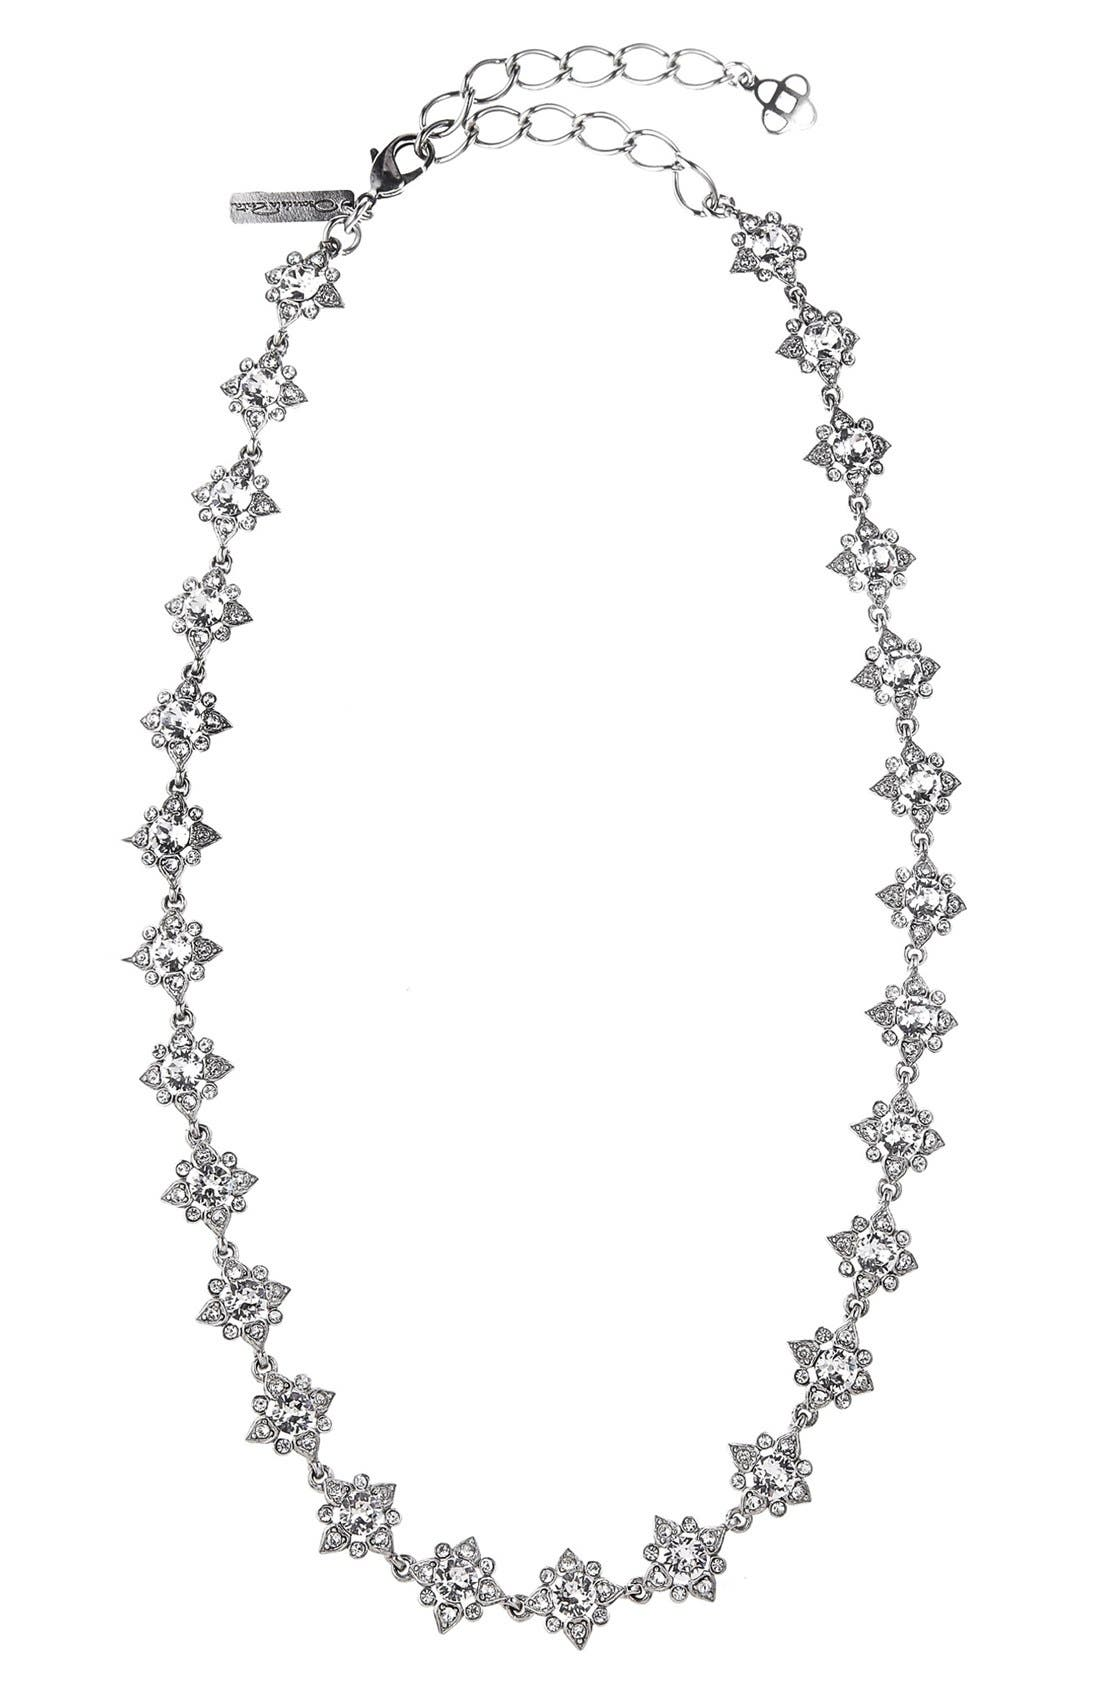 Oscar de la Renta 'Delicate Star' Swarovski Crystal Collar Necklace